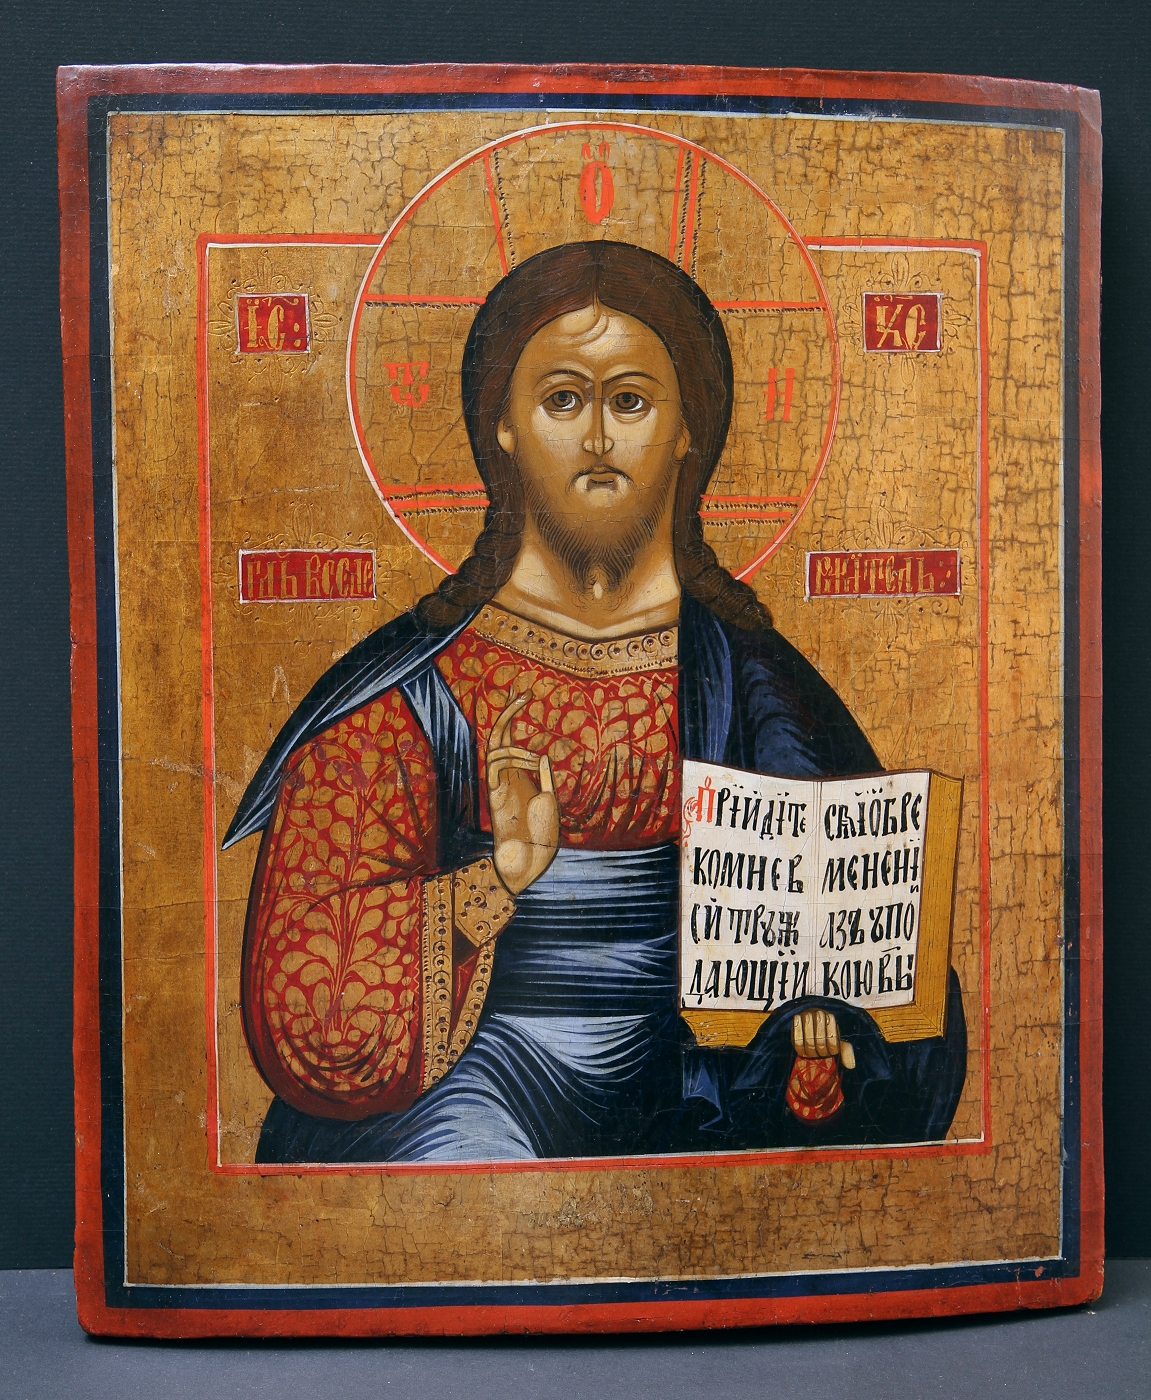 Antique - Religious Shop , Old Russian Icons - icon 41: www.icon.lt/ic0041.html